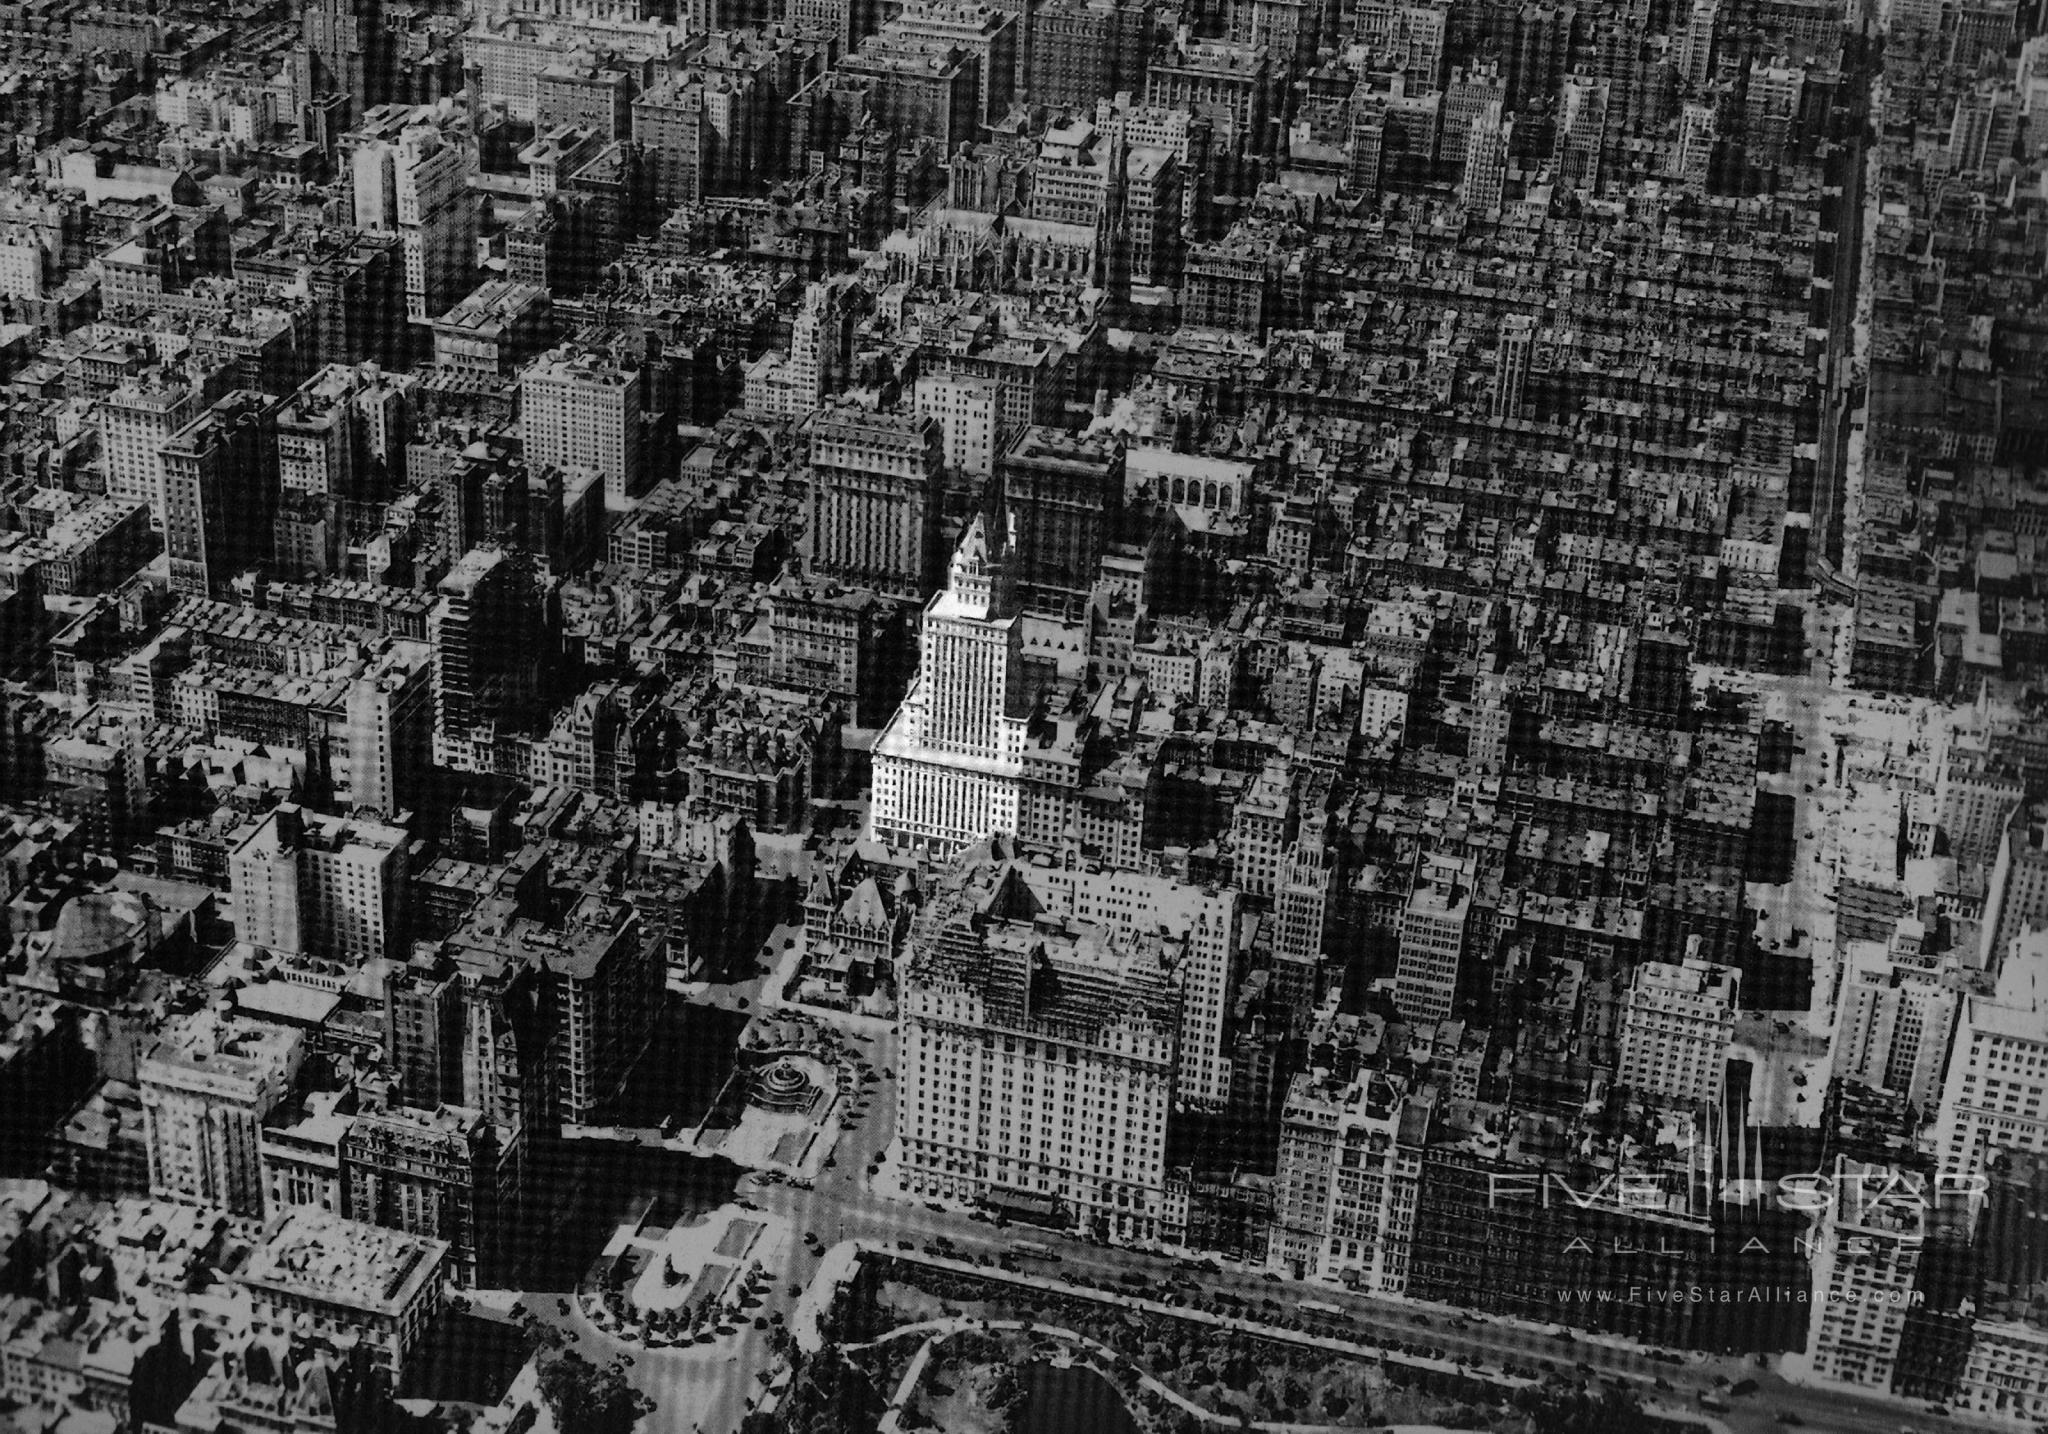 1925 View of the Crown Building in Midtown Manhattan